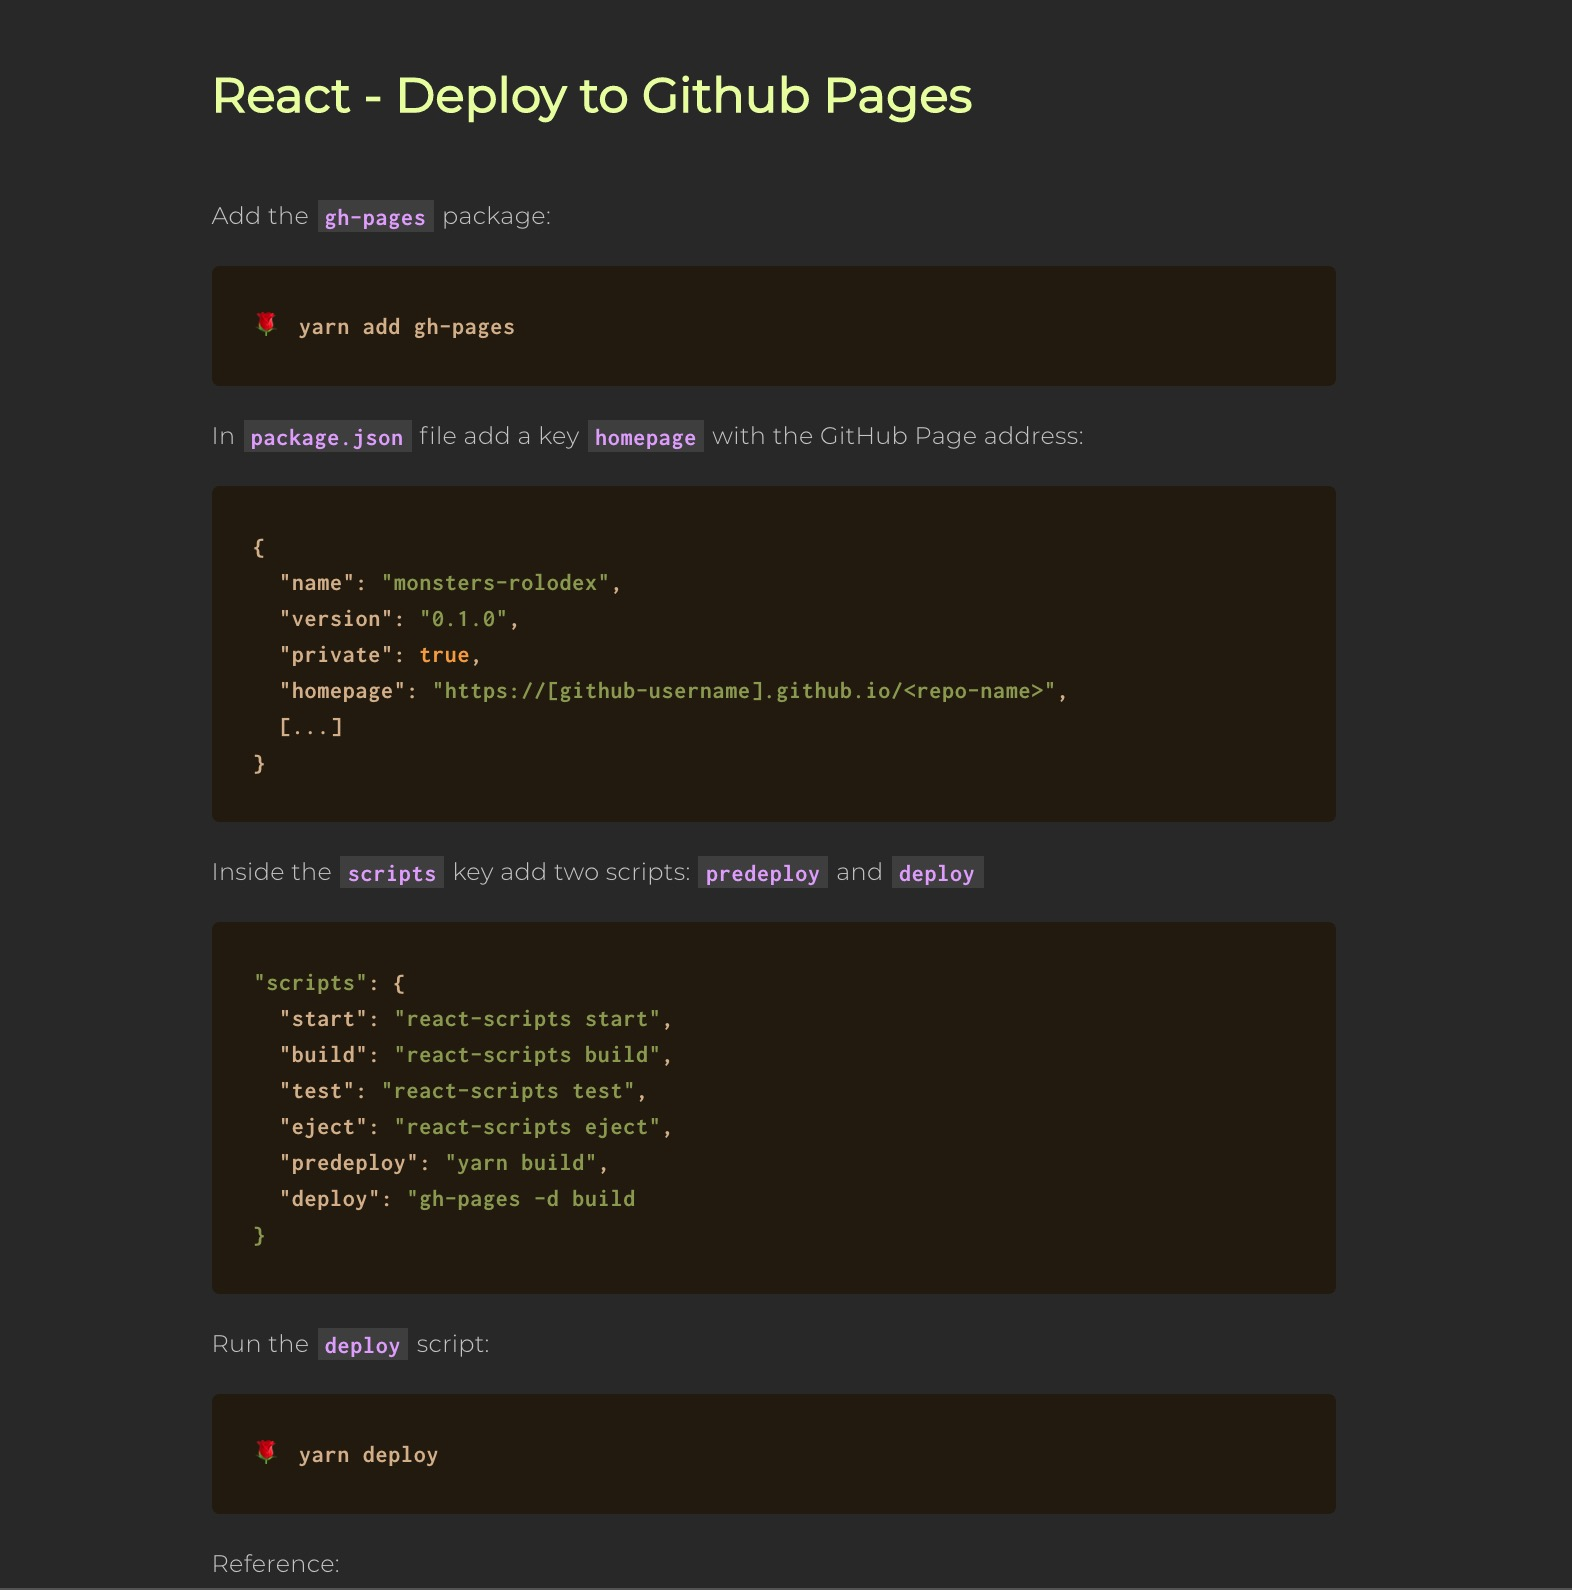 React - Deploy to GitHub Pages